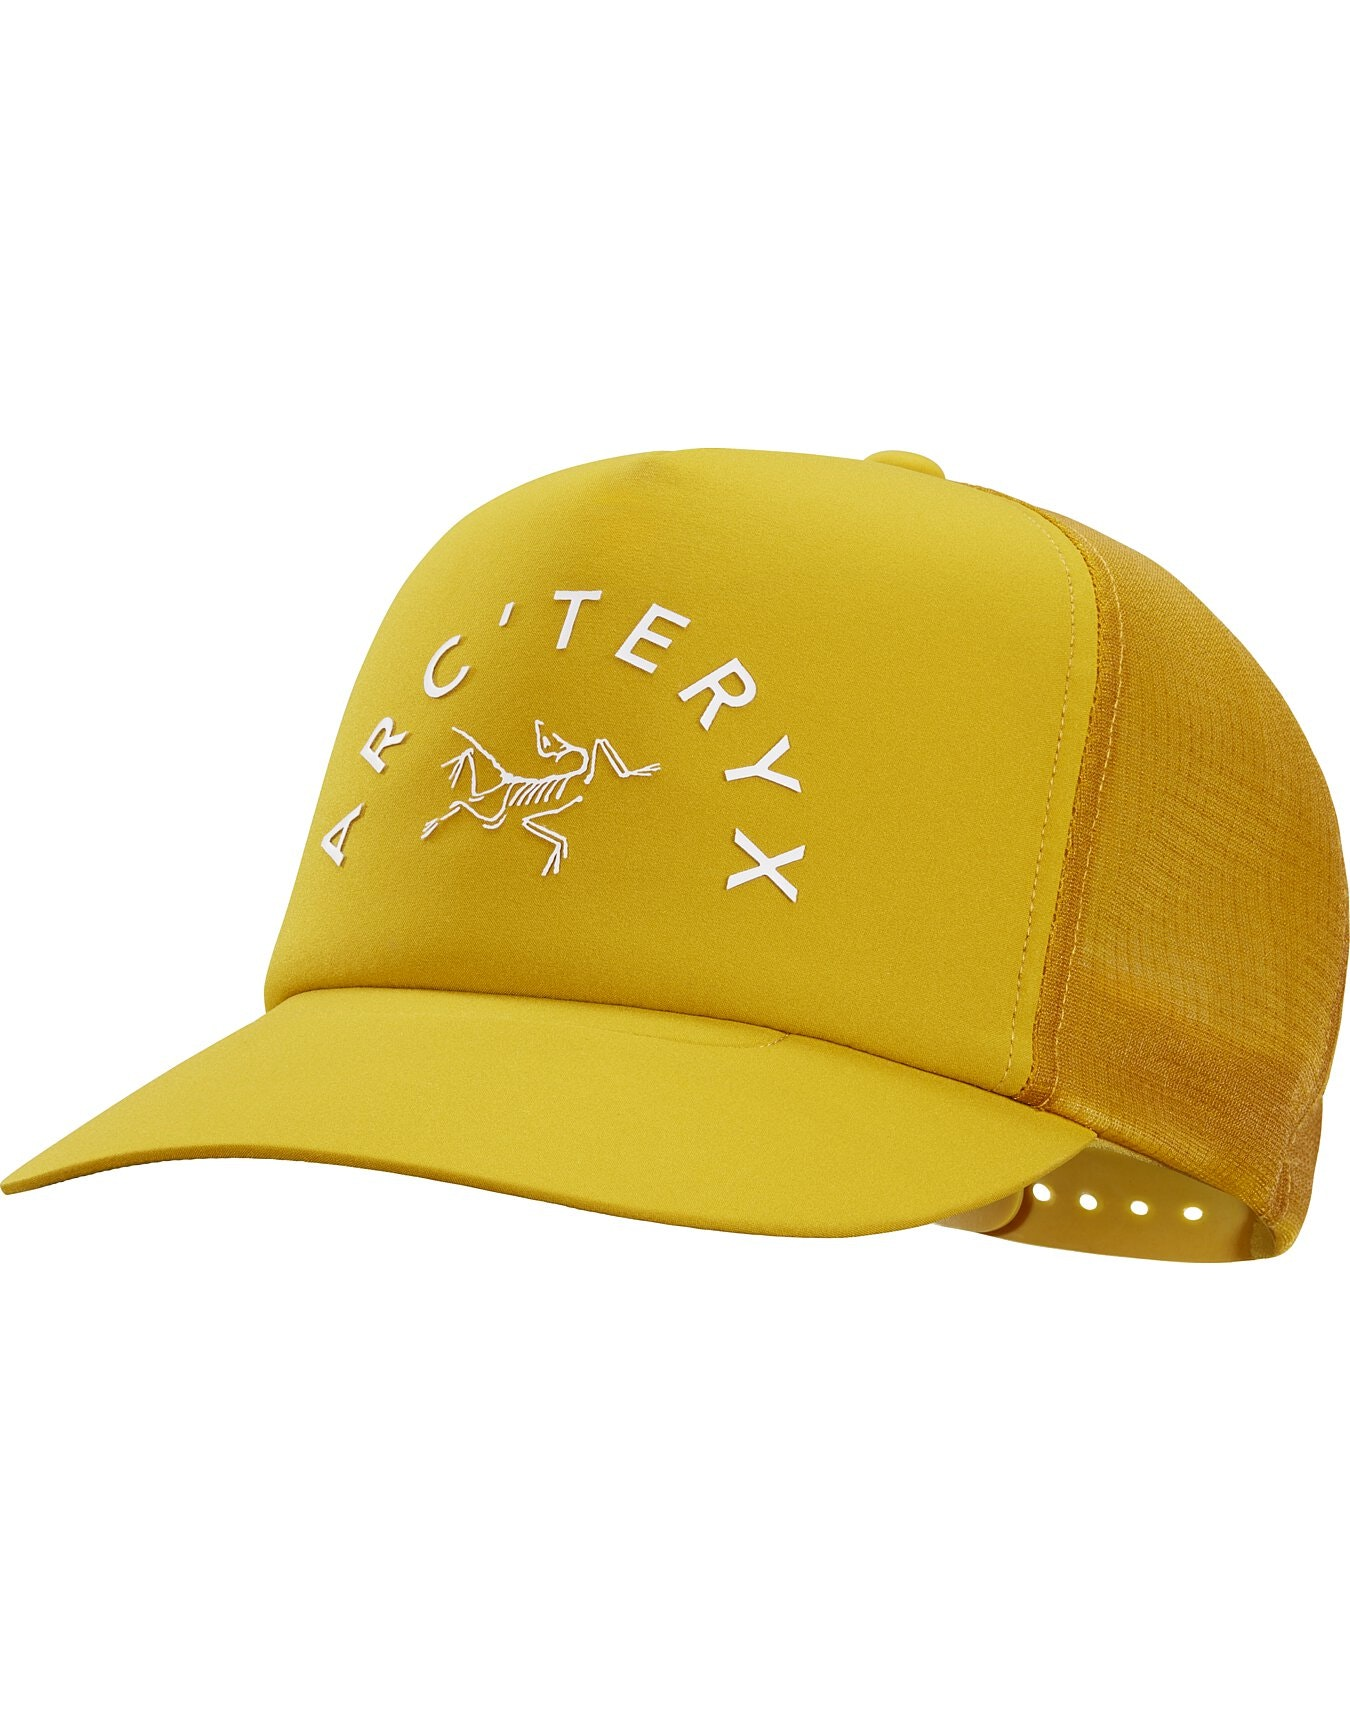 Arch'teryx Curved Brim Trucker Hat Pipe Dream